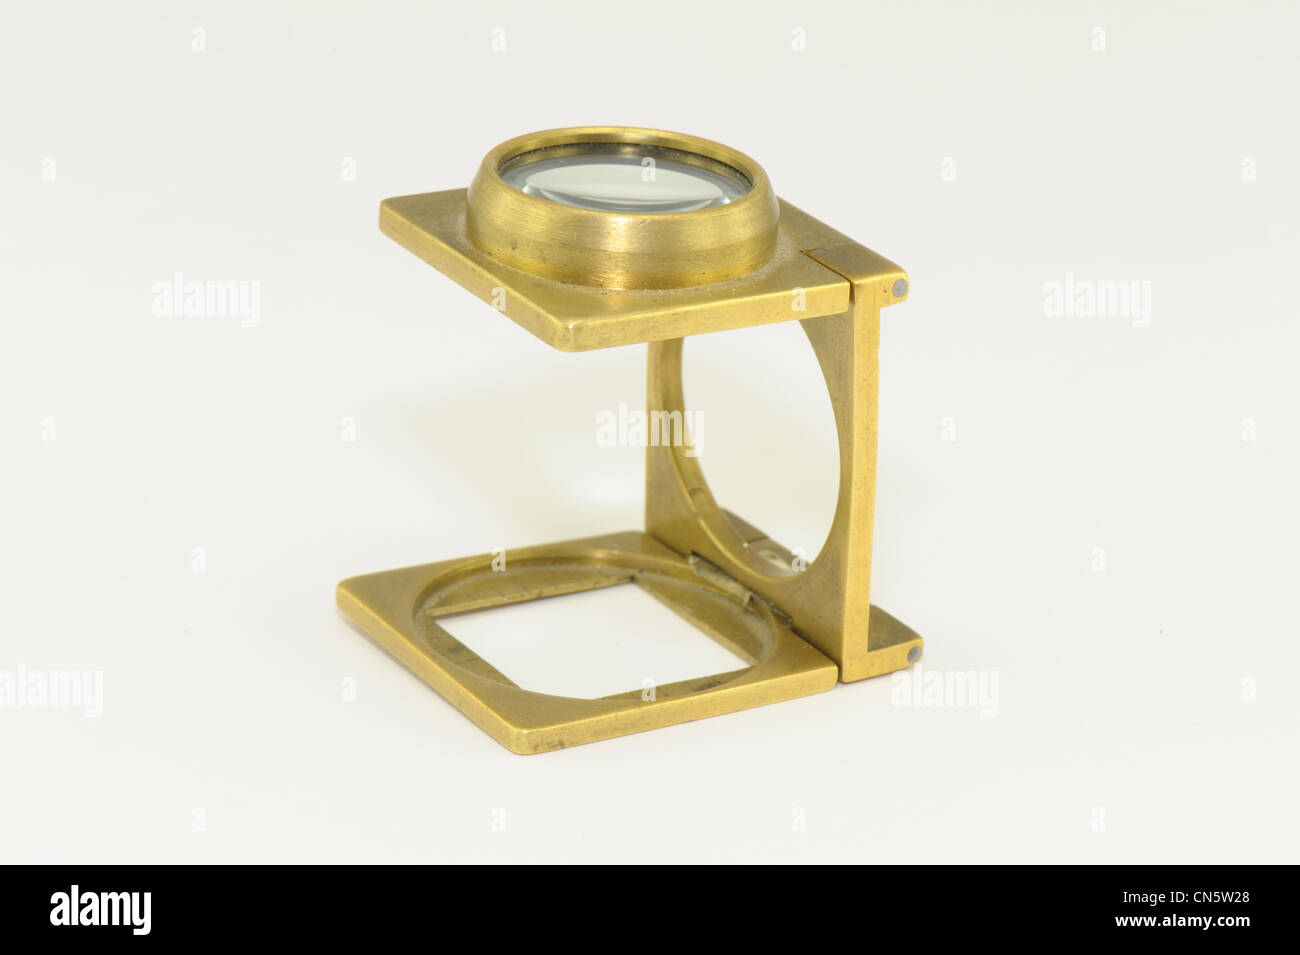 magnifying glass brass taken on a white background linen tester old fashioned - Stock Image